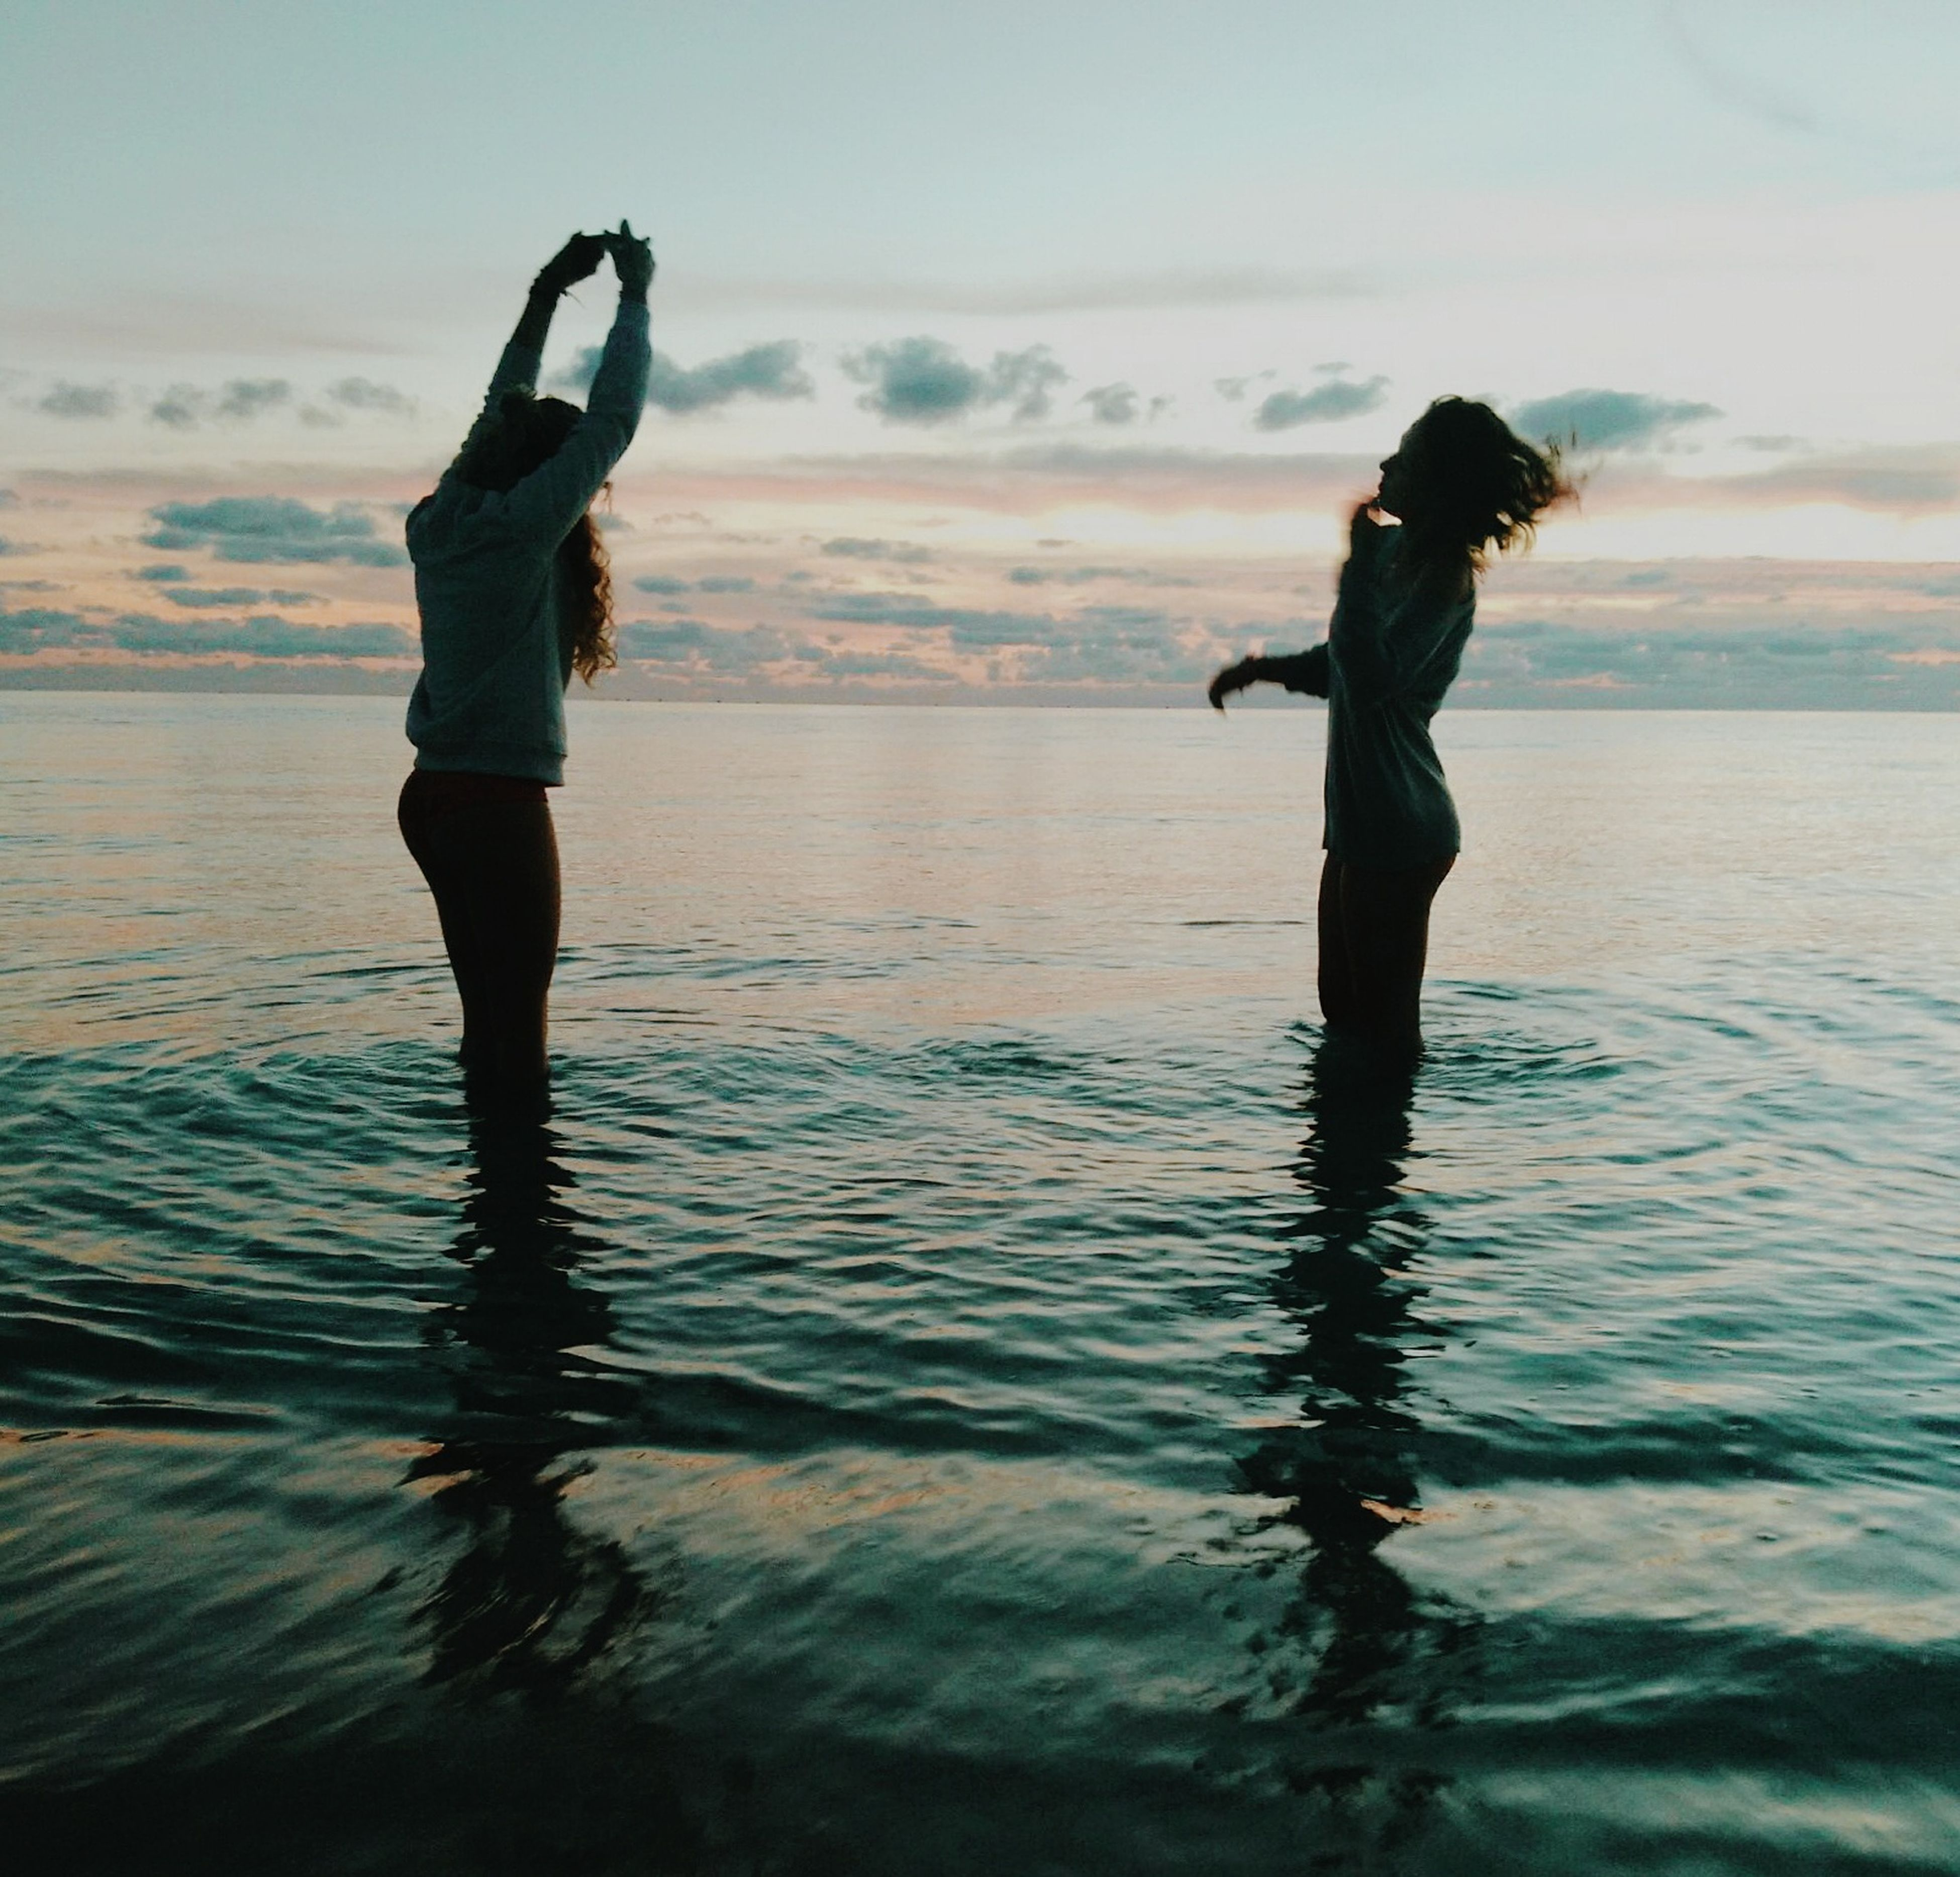 water, sea, sunset, lifestyles, leisure activity, silhouette, sky, standing, beach, reflection, full length, horizon over water, waterfront, beauty in nature, tranquil scene, scenics, vacations, tranquility